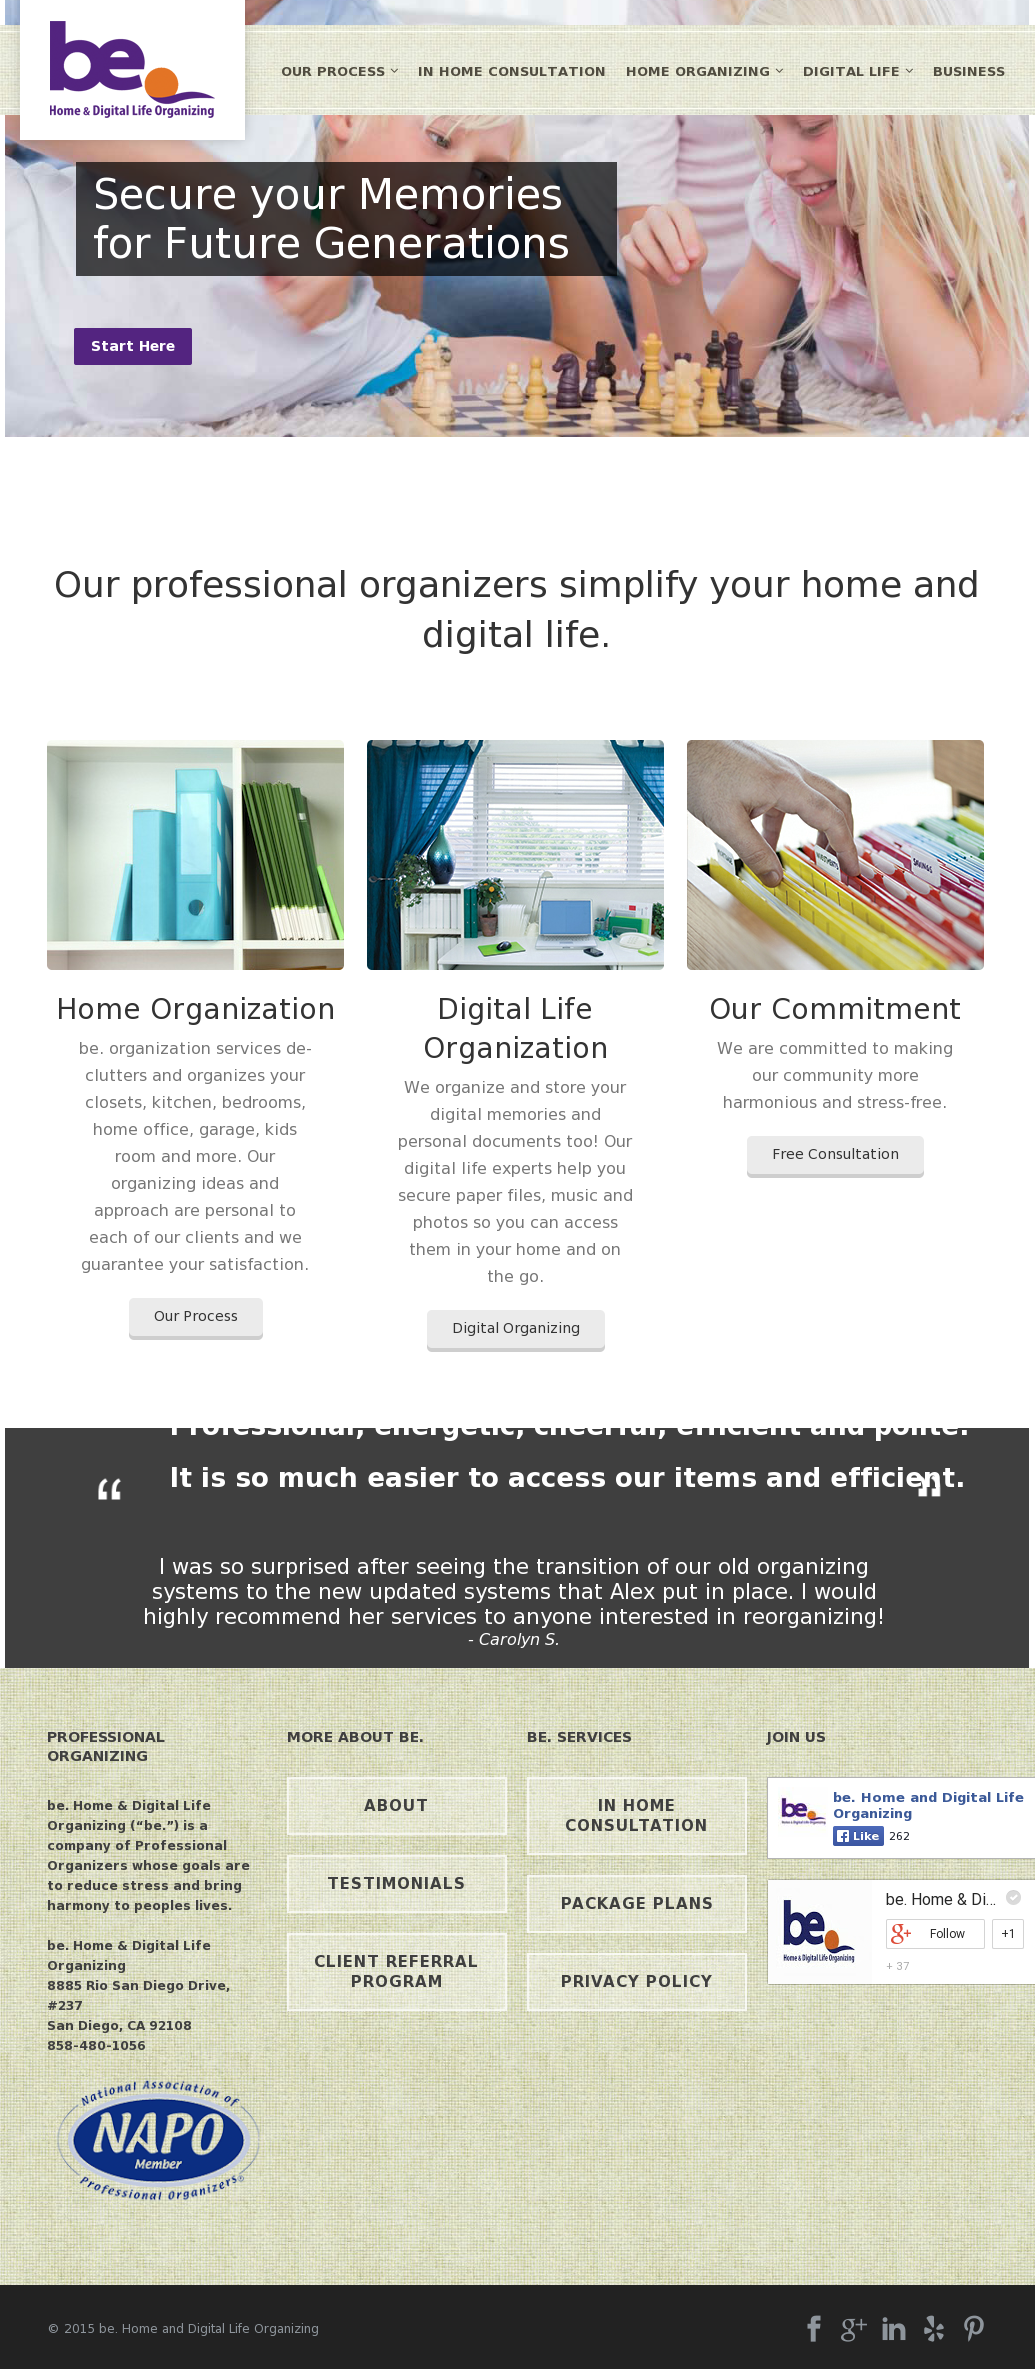 Be  Home And Digital Life Organizing Competitors, Revenue